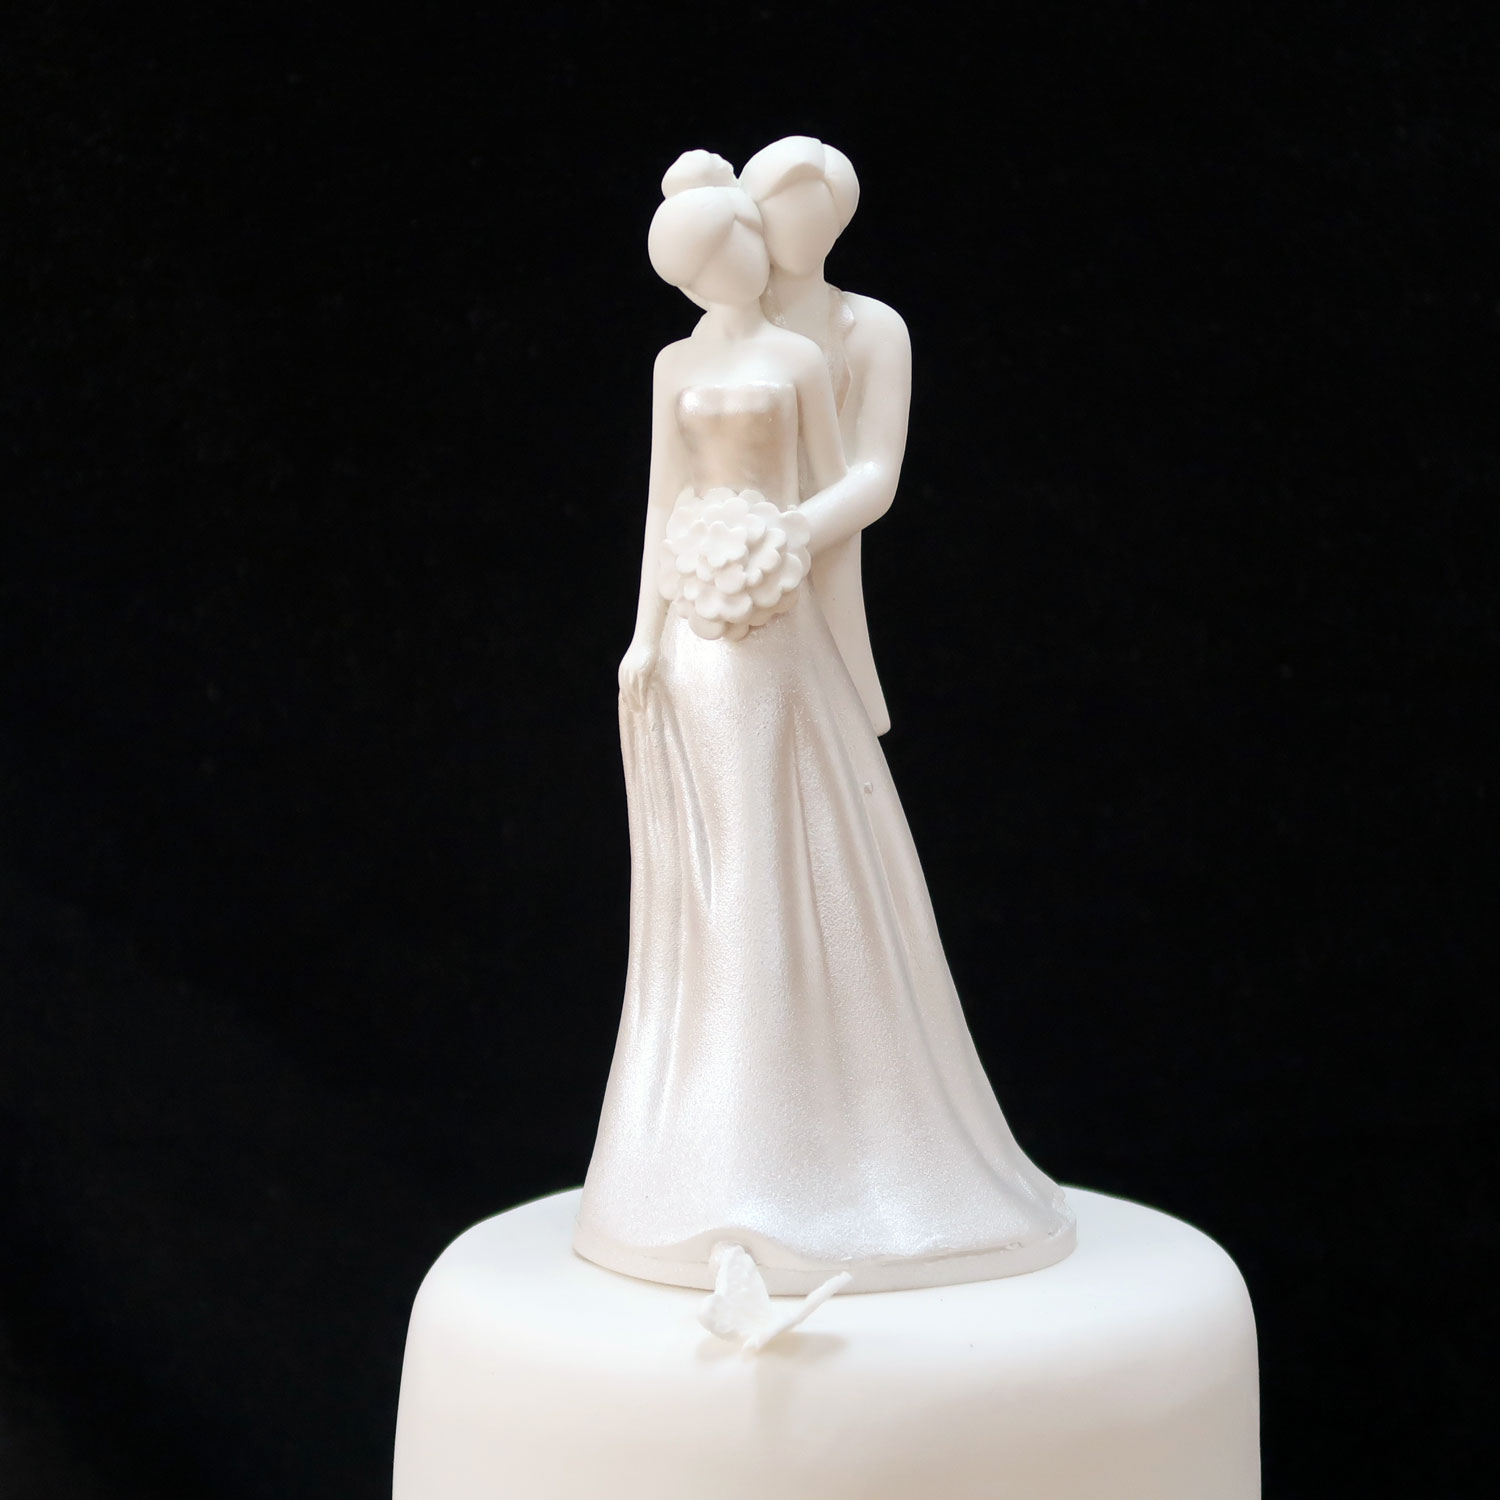 Sugarcraft Bride Groom Cake Topper